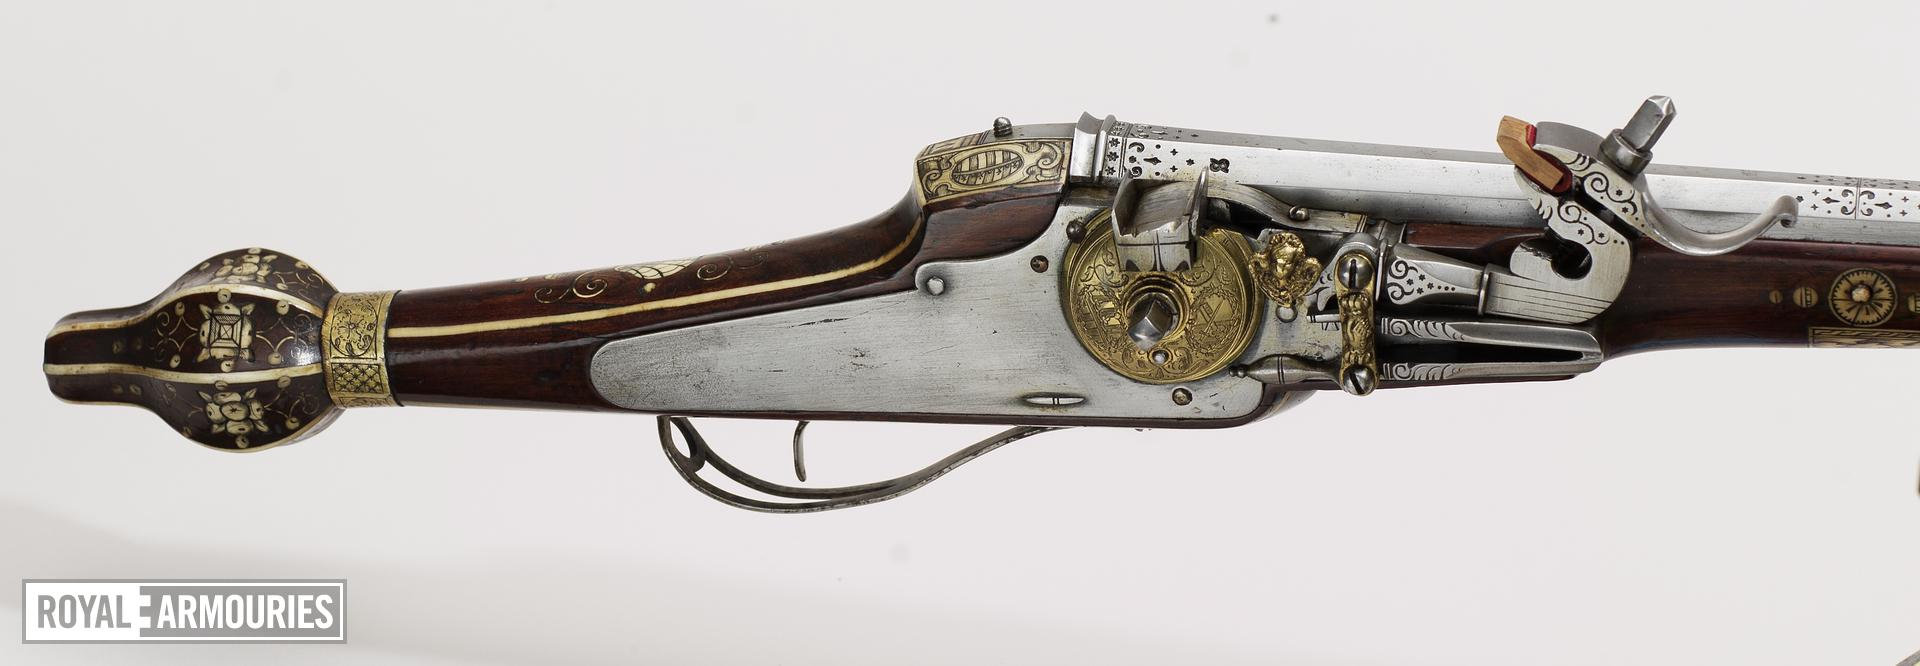 Wheellock holster pistol One of a pair; see XII.1258